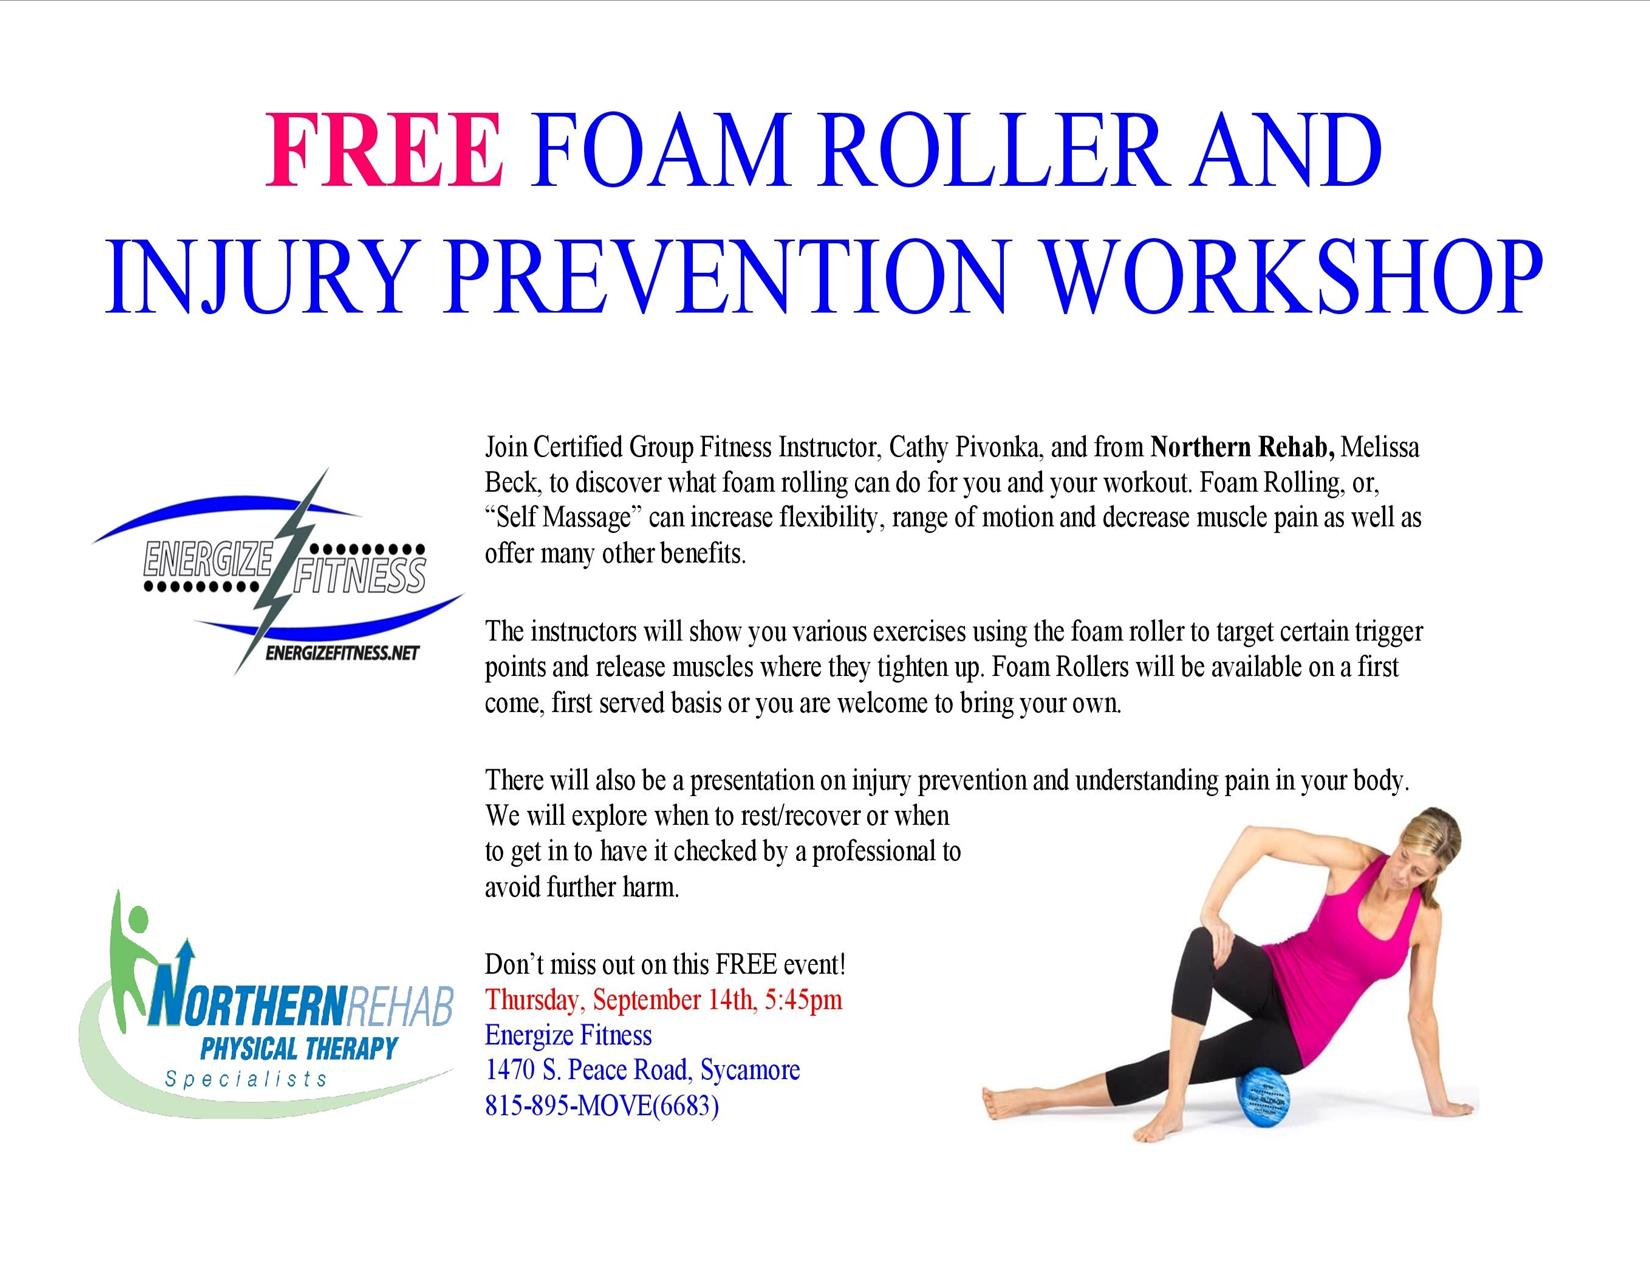 Buy foam roll physical therapy - Foam Rolling Injury Prevention Workshop Northern Rehabilitation Physical Therapy Specialists